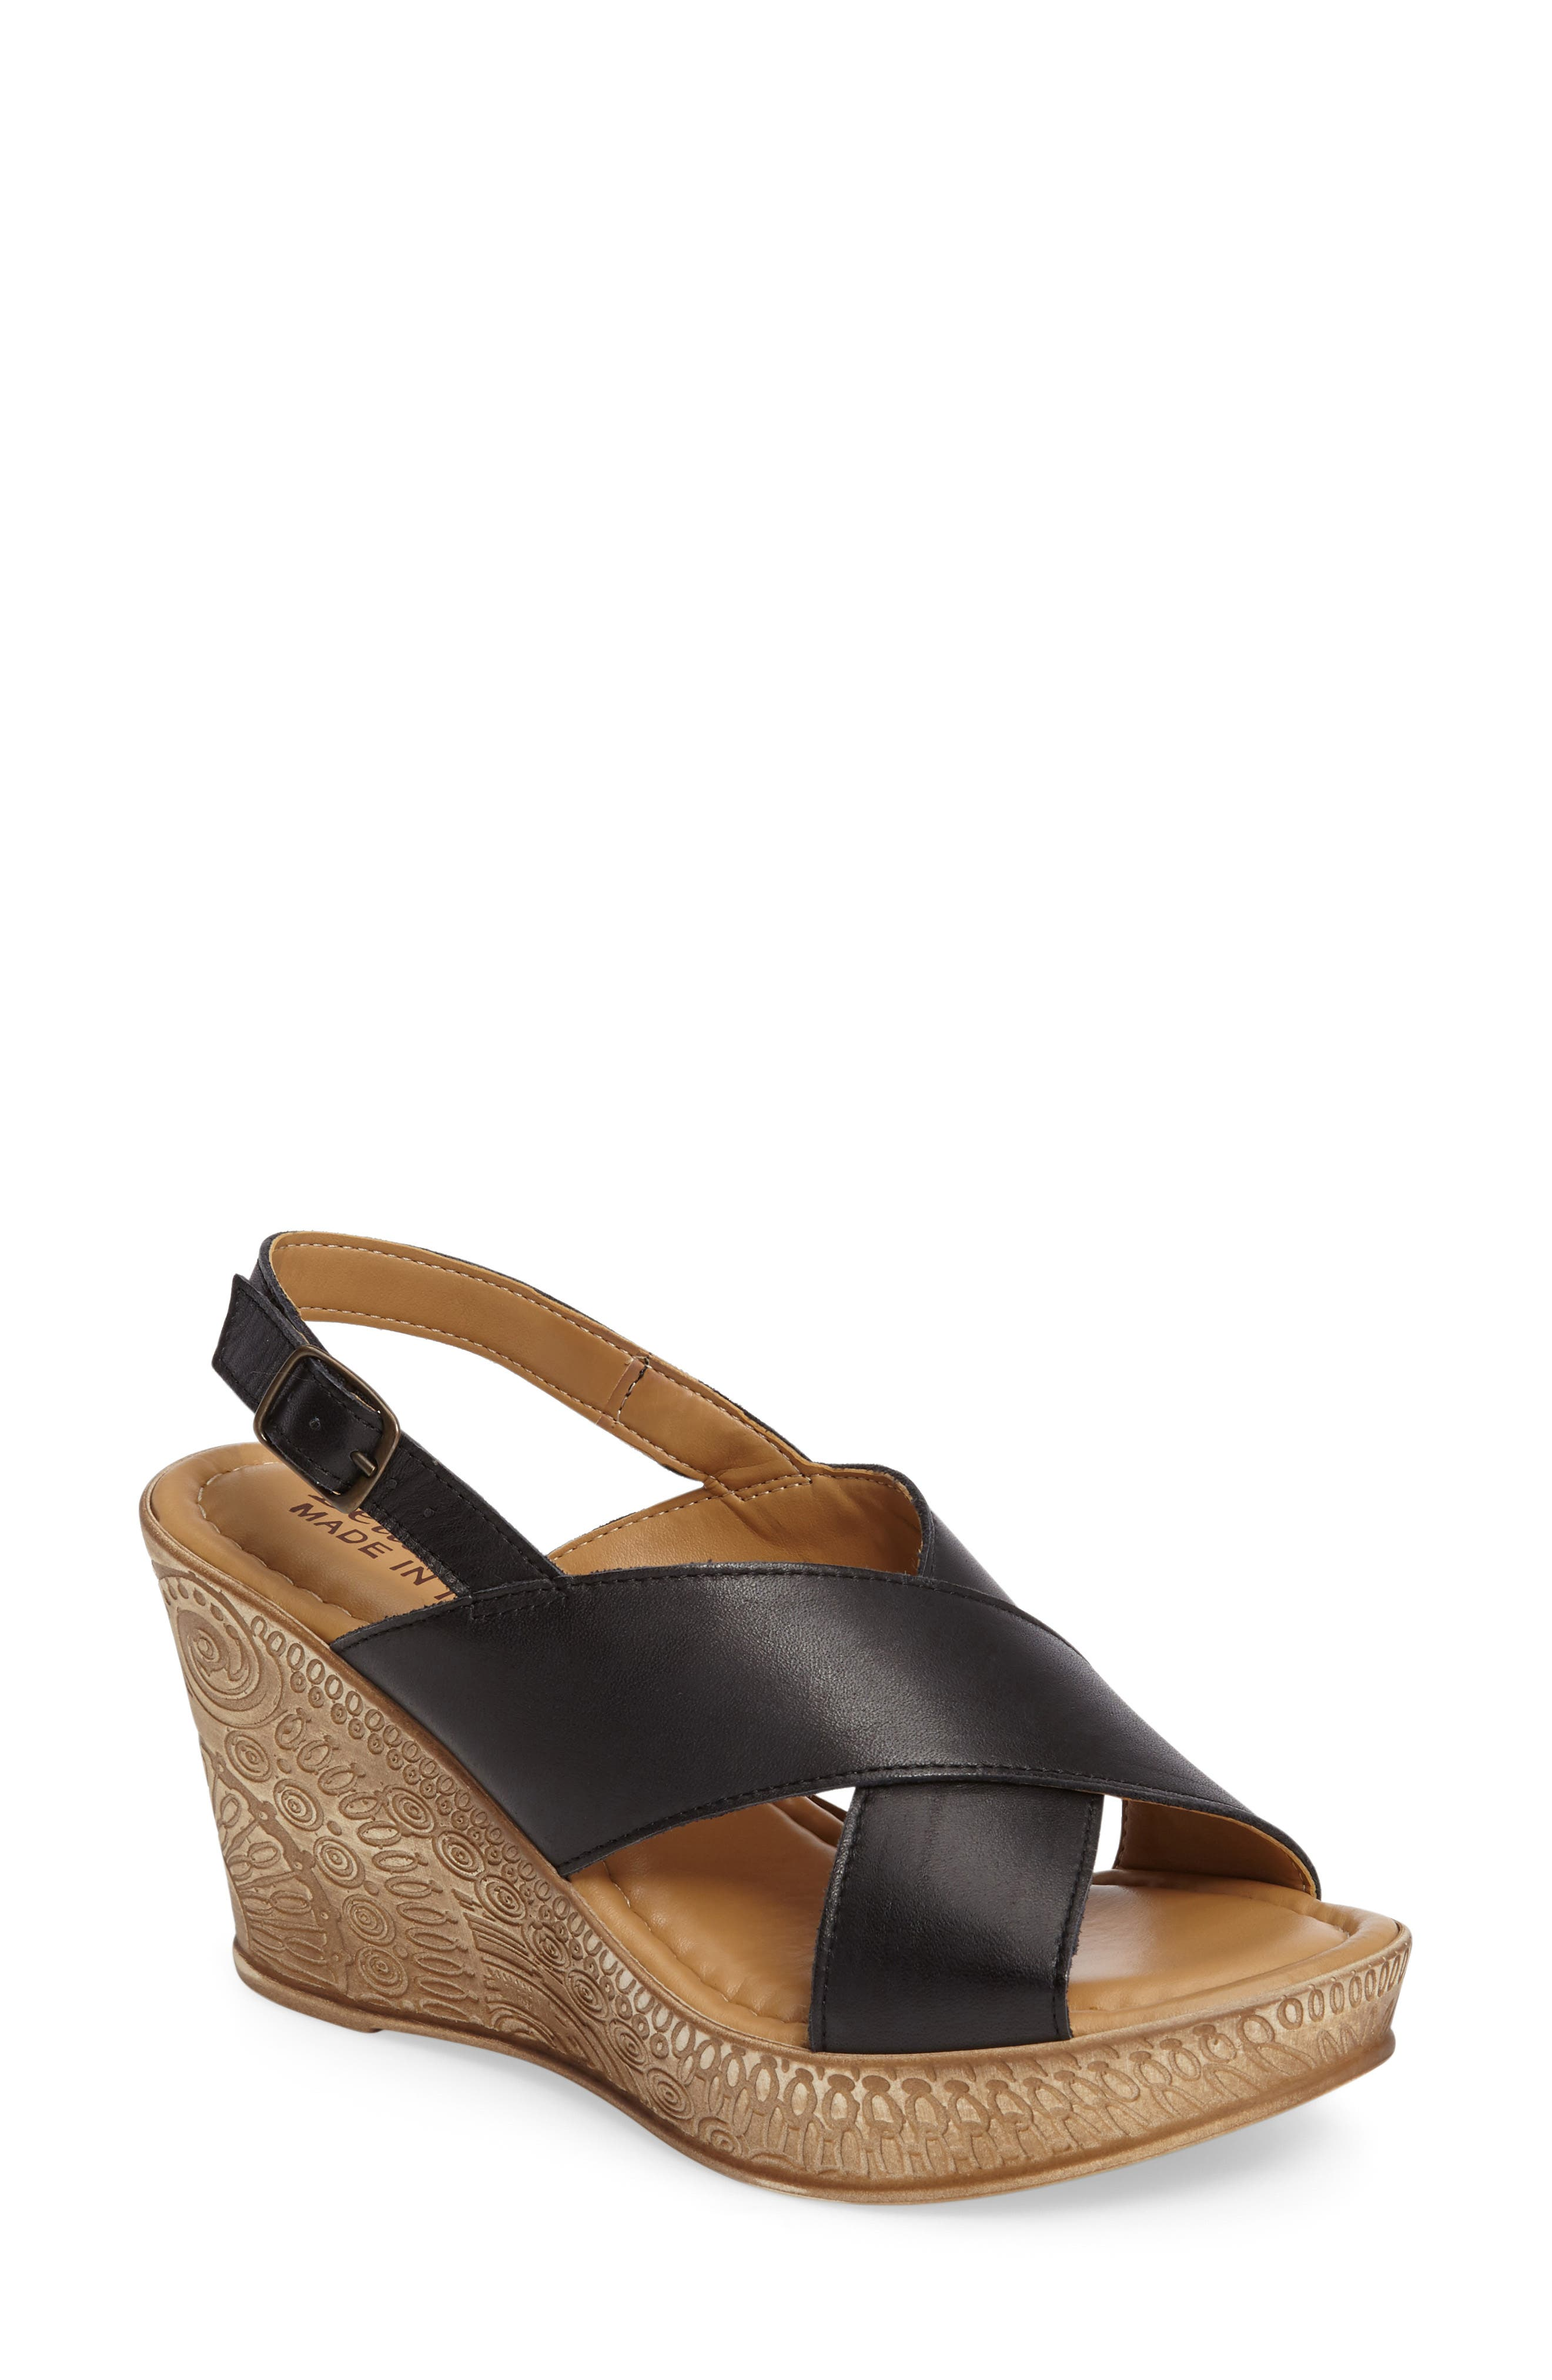 BELLA VITA Lea Wedge Sandal